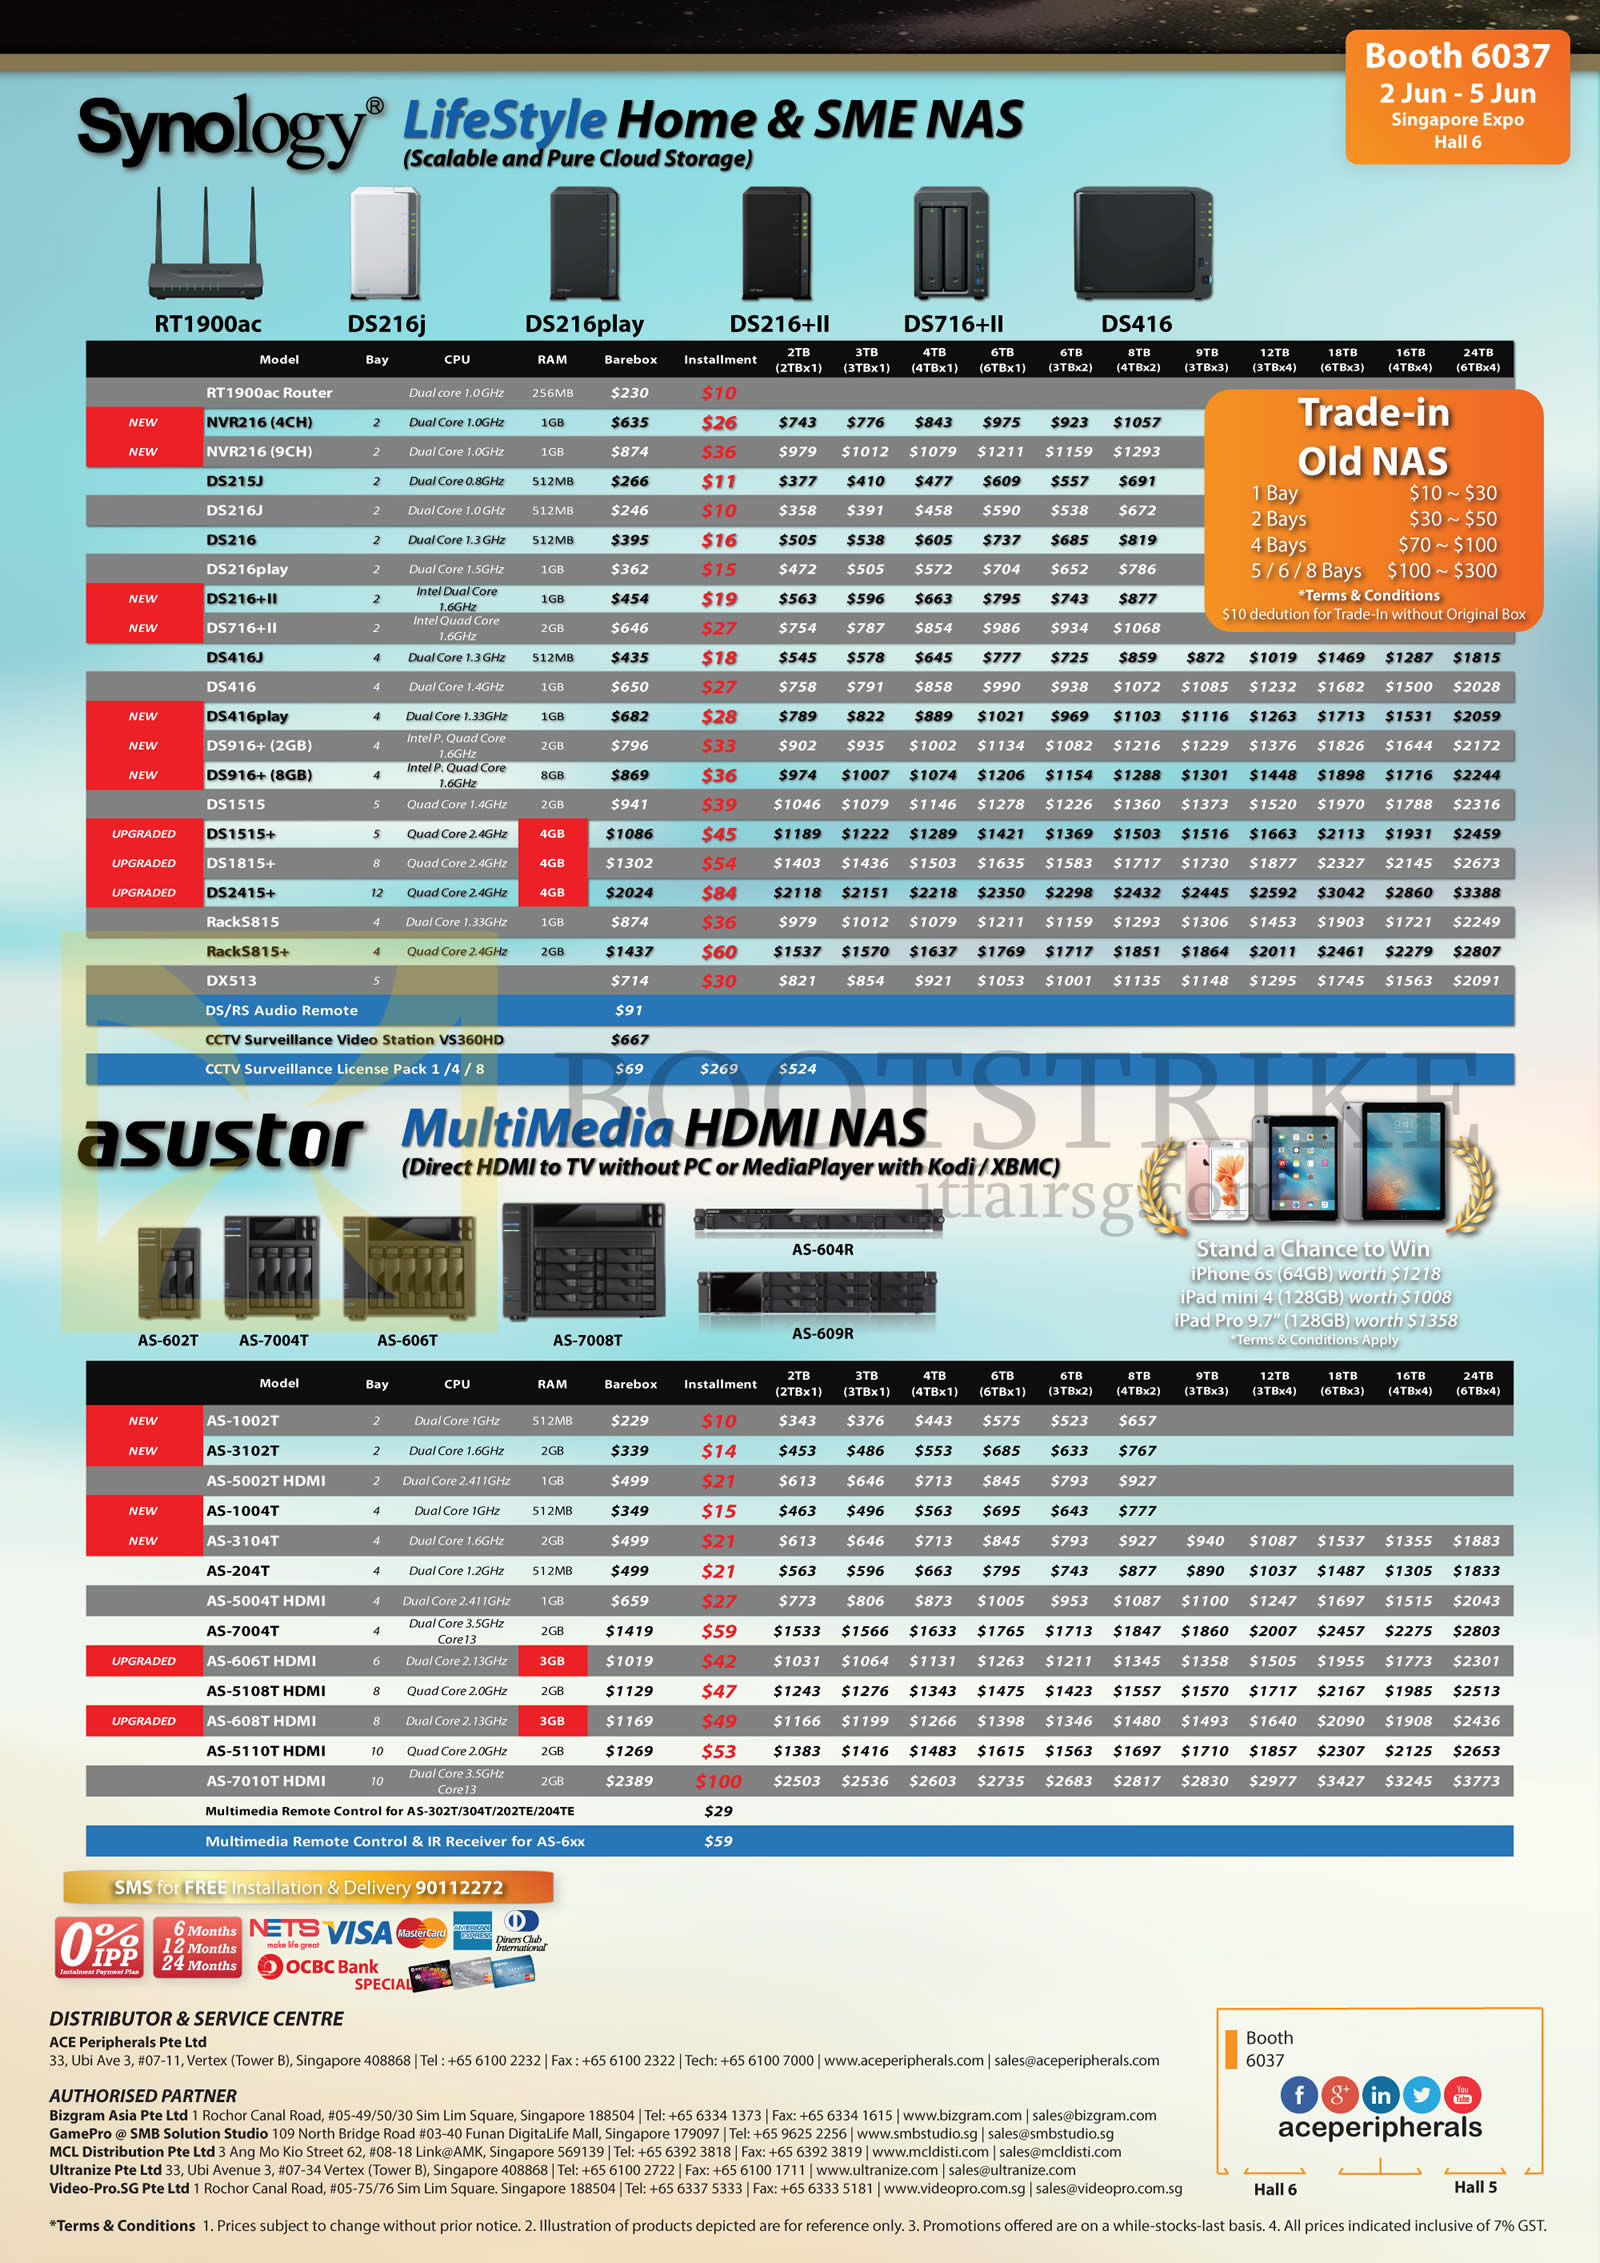 PC SHOW 2016 price list image brochure of ACE Peripherals NAS Asustor, Synology, Lifestyle Home SME, Multimedia HDMI NAS